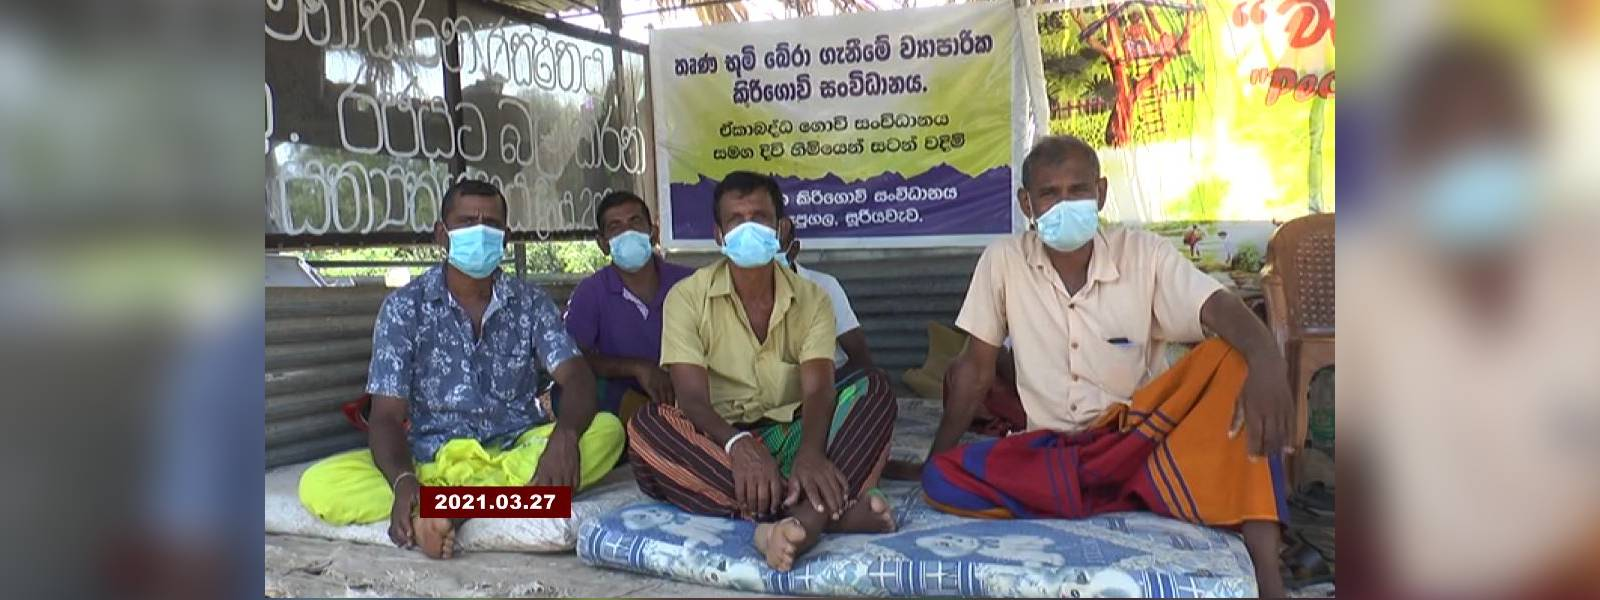 Protest on farmers, environment issues continue